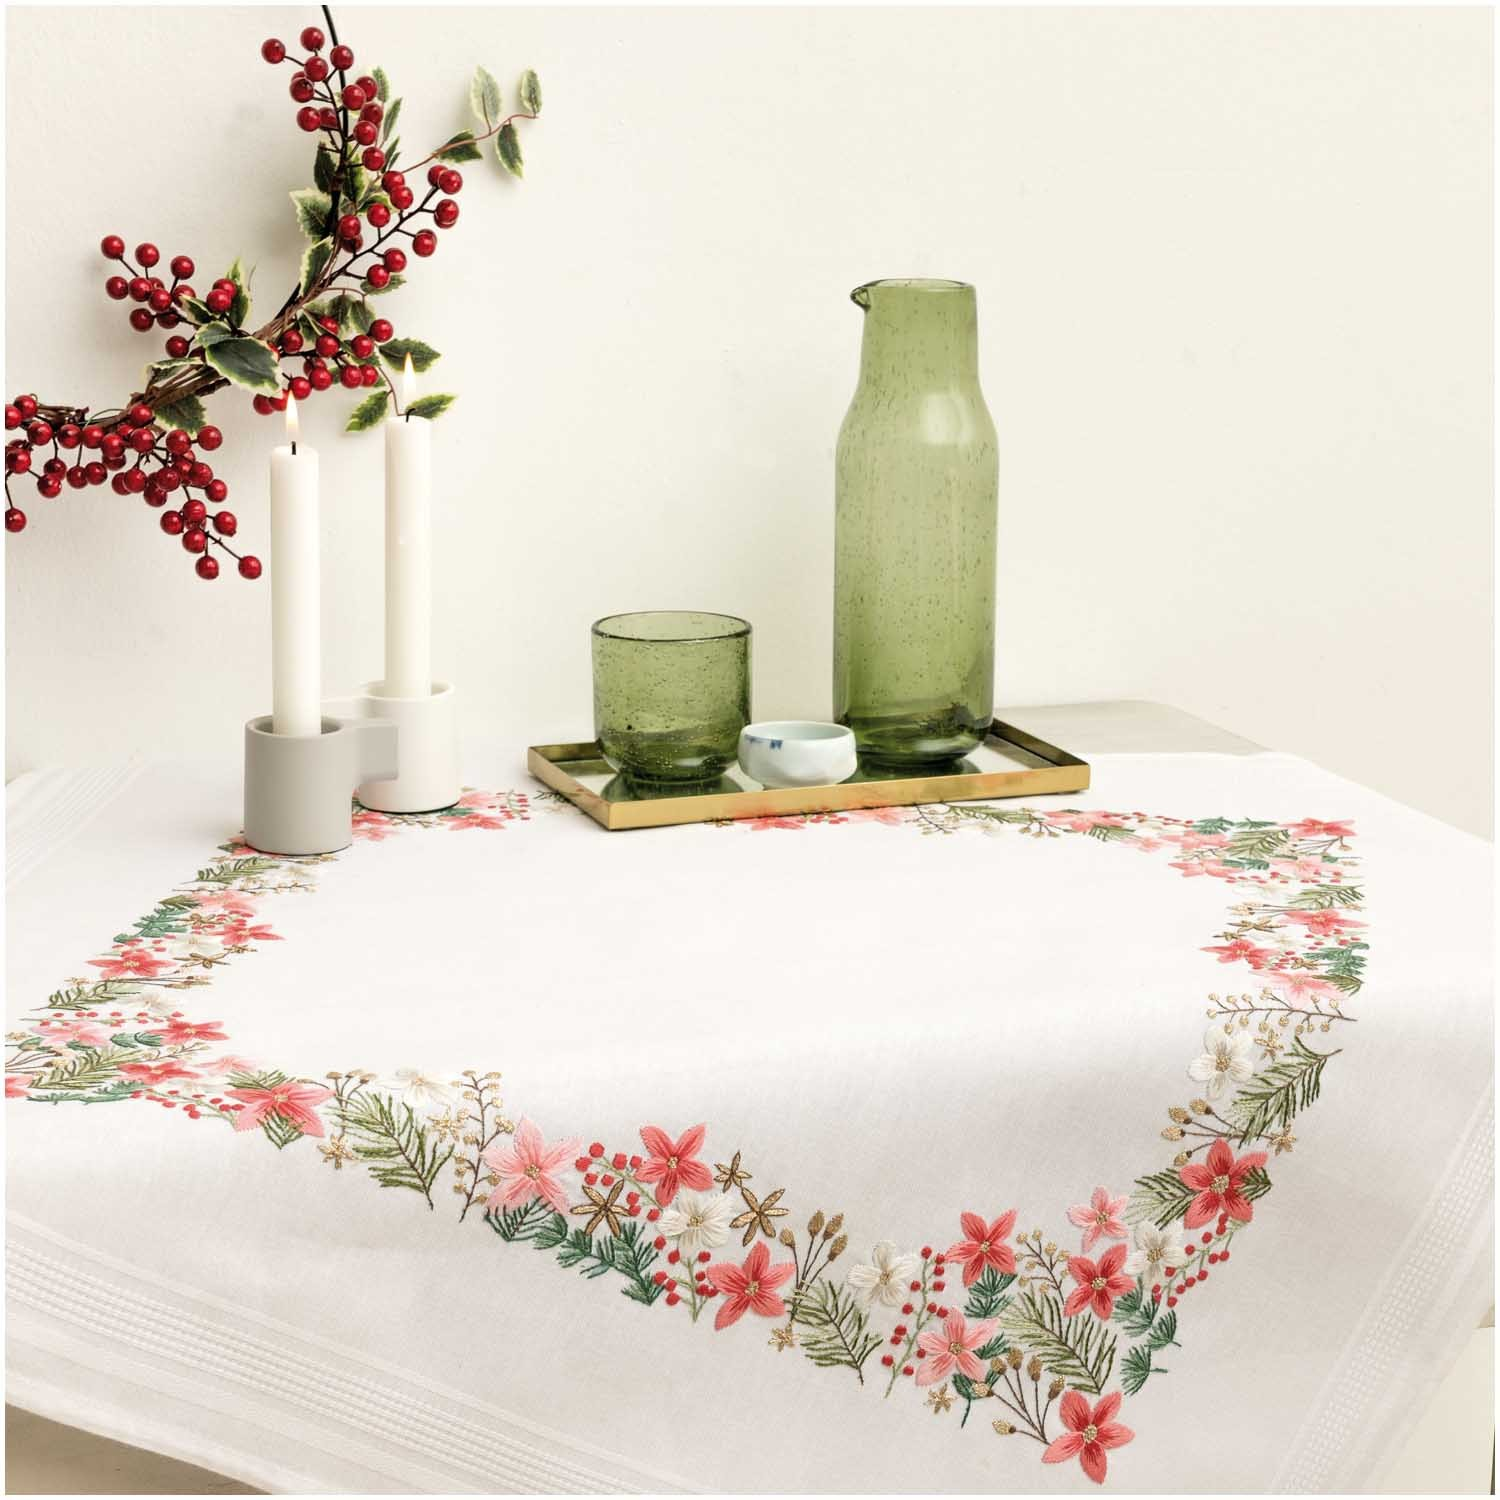 Rico Christmas Flower Embroidery Table Cloth Kit